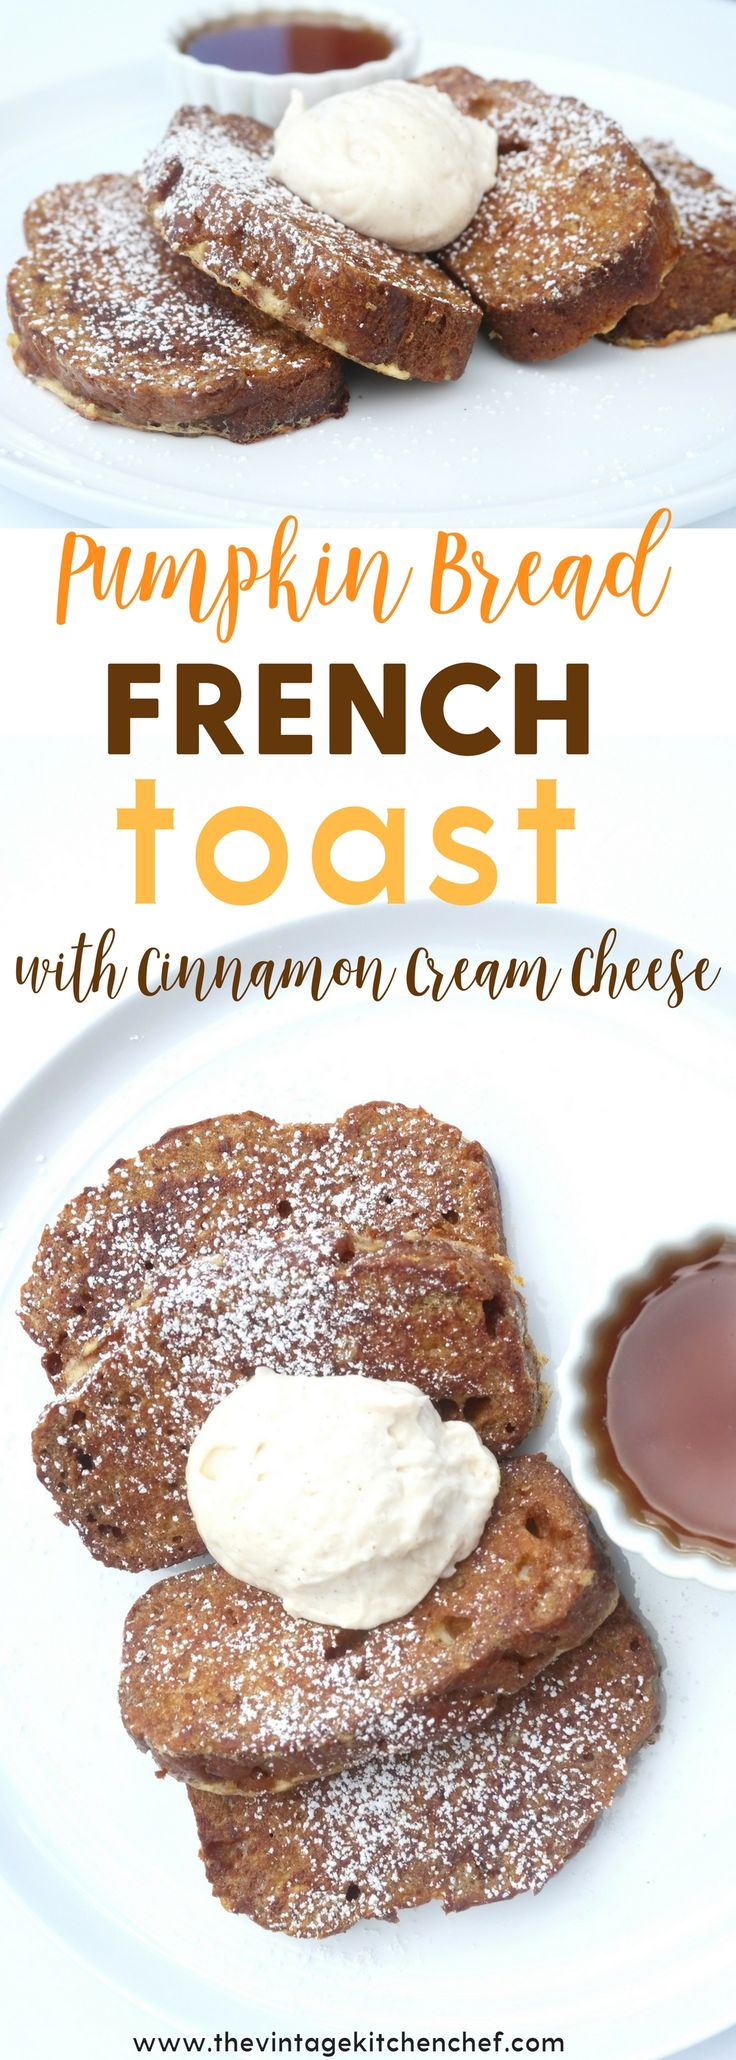 Pumpkin Bread French Toast is utterly delicious, delectable and delightful! Top if off with cinnamon cream cheese to achieve french toast perfection!